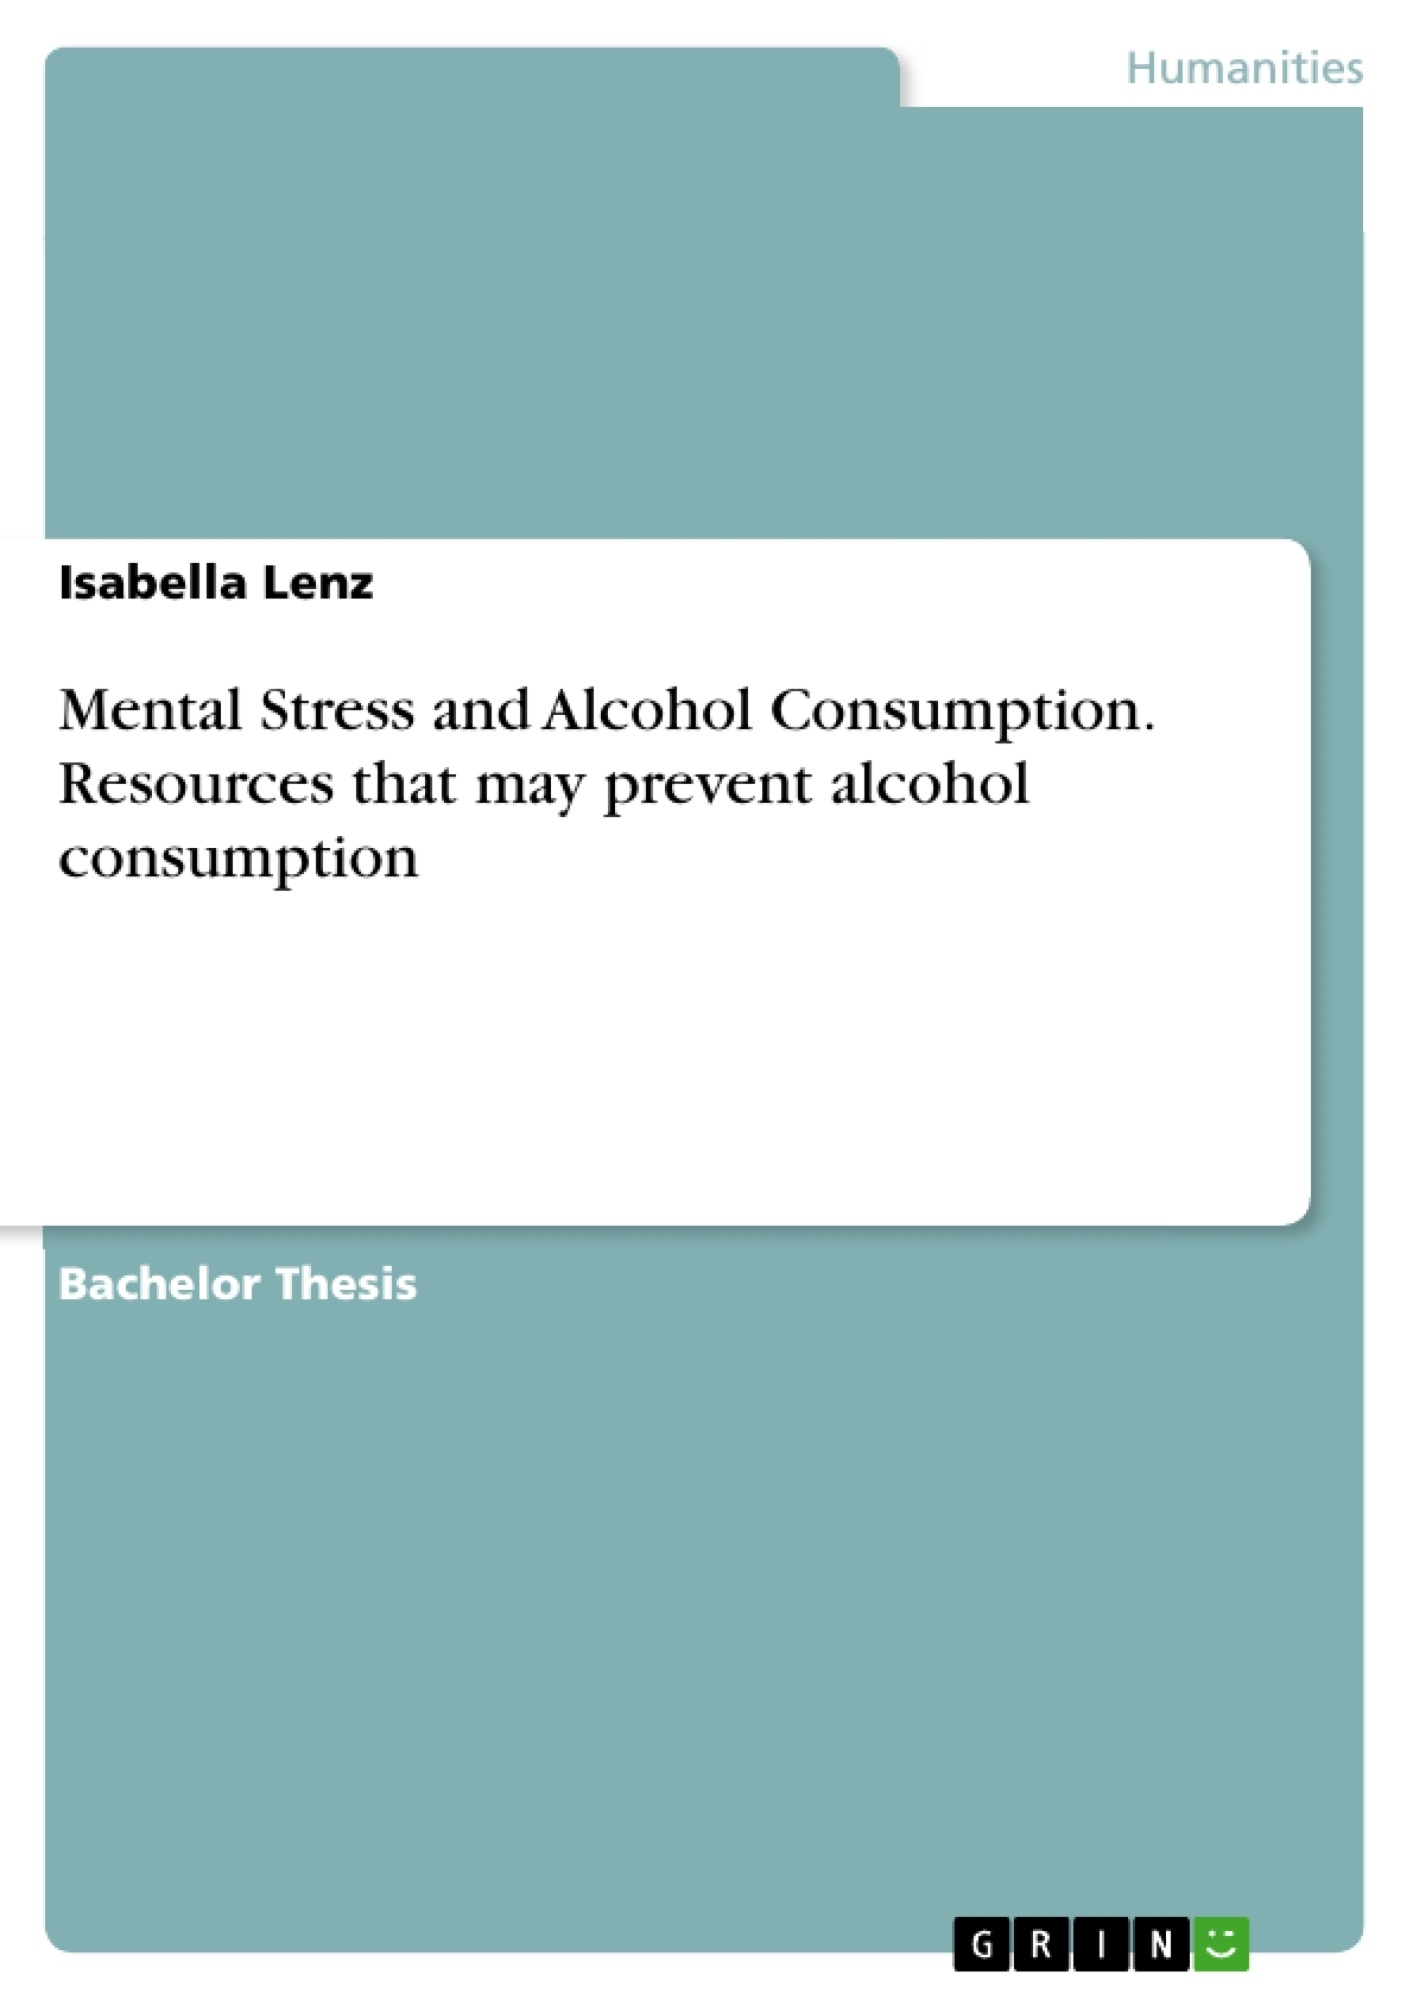 Title: Mental Stress and Alcohol Consumption. Resources that may prevent alcohol consumption